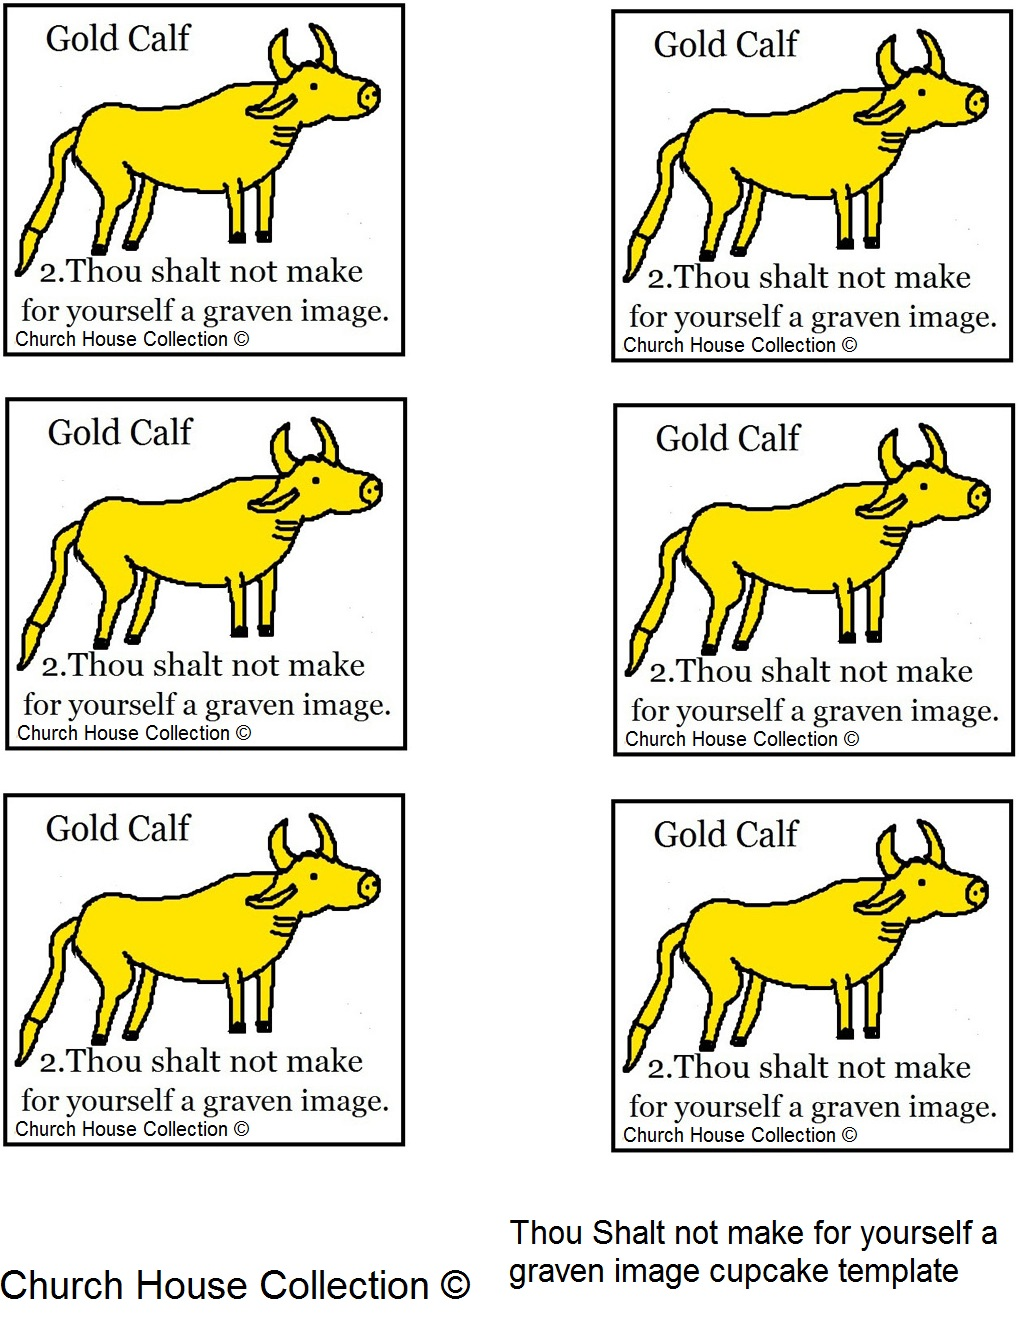 Church house collection blog 10 commandments thou shalt for The golden calf coloring page